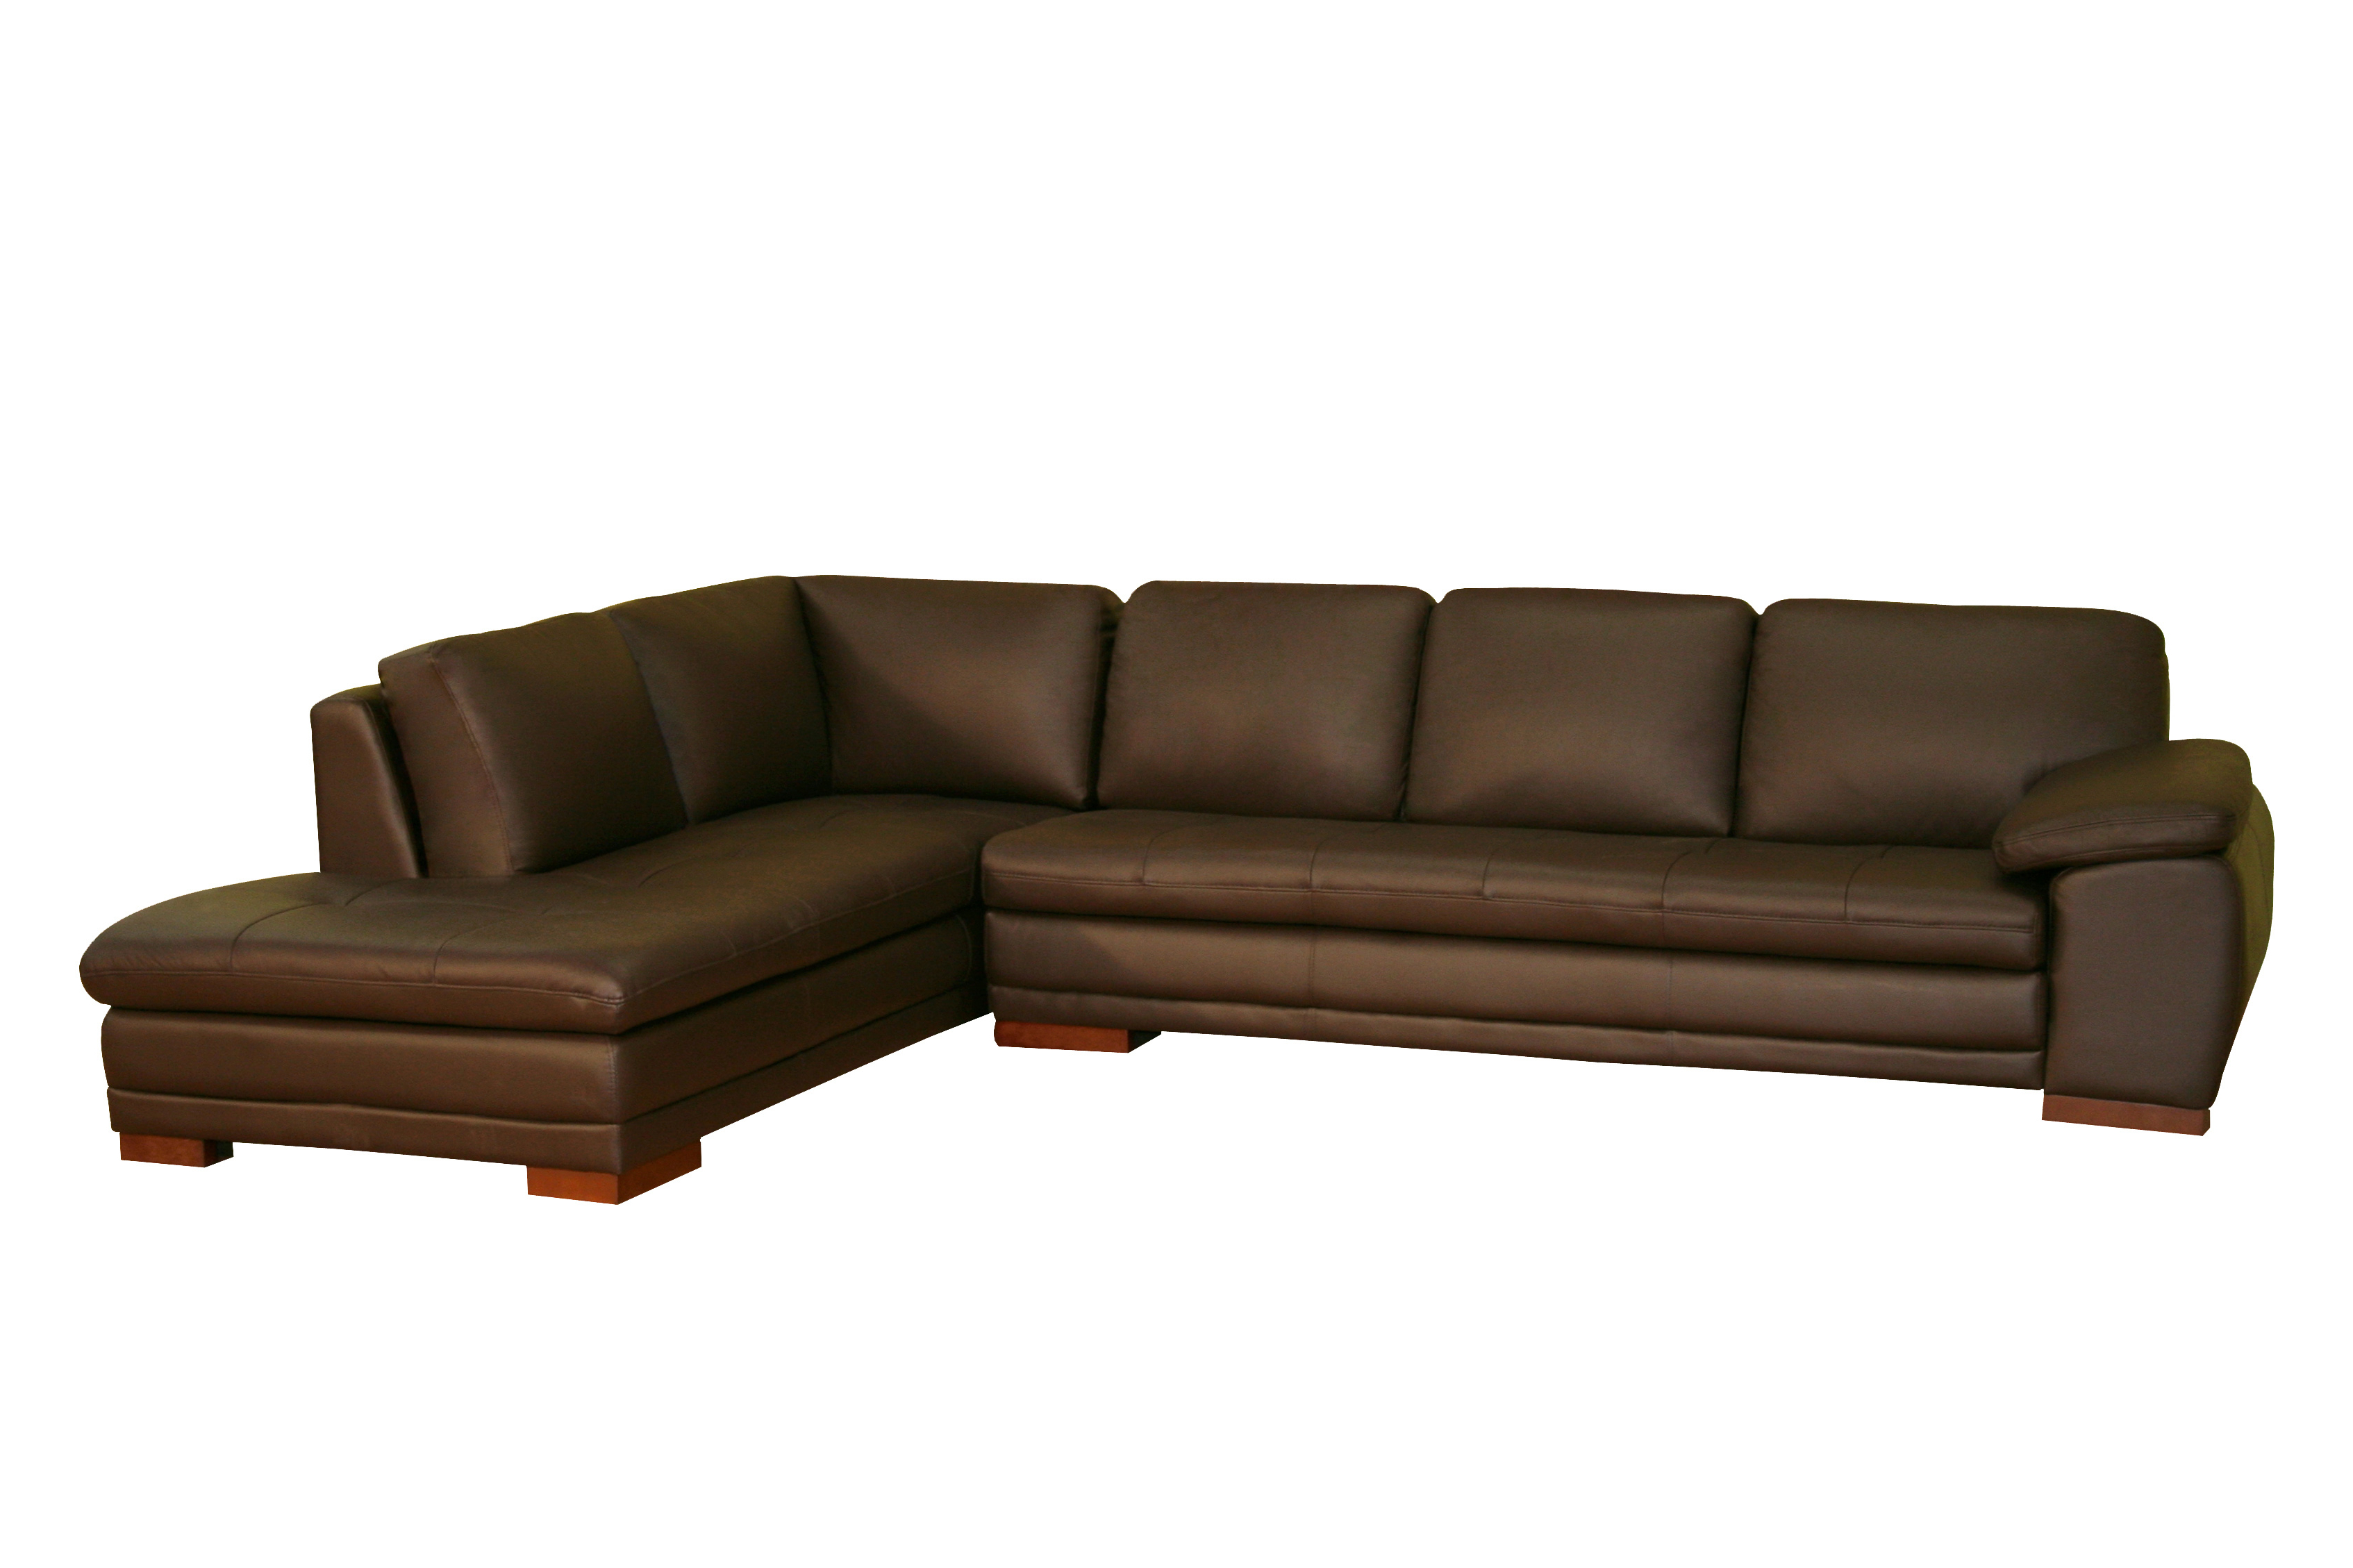 Fashionable Sectional Sofa With Chaise Lounge (View 11 of 20)